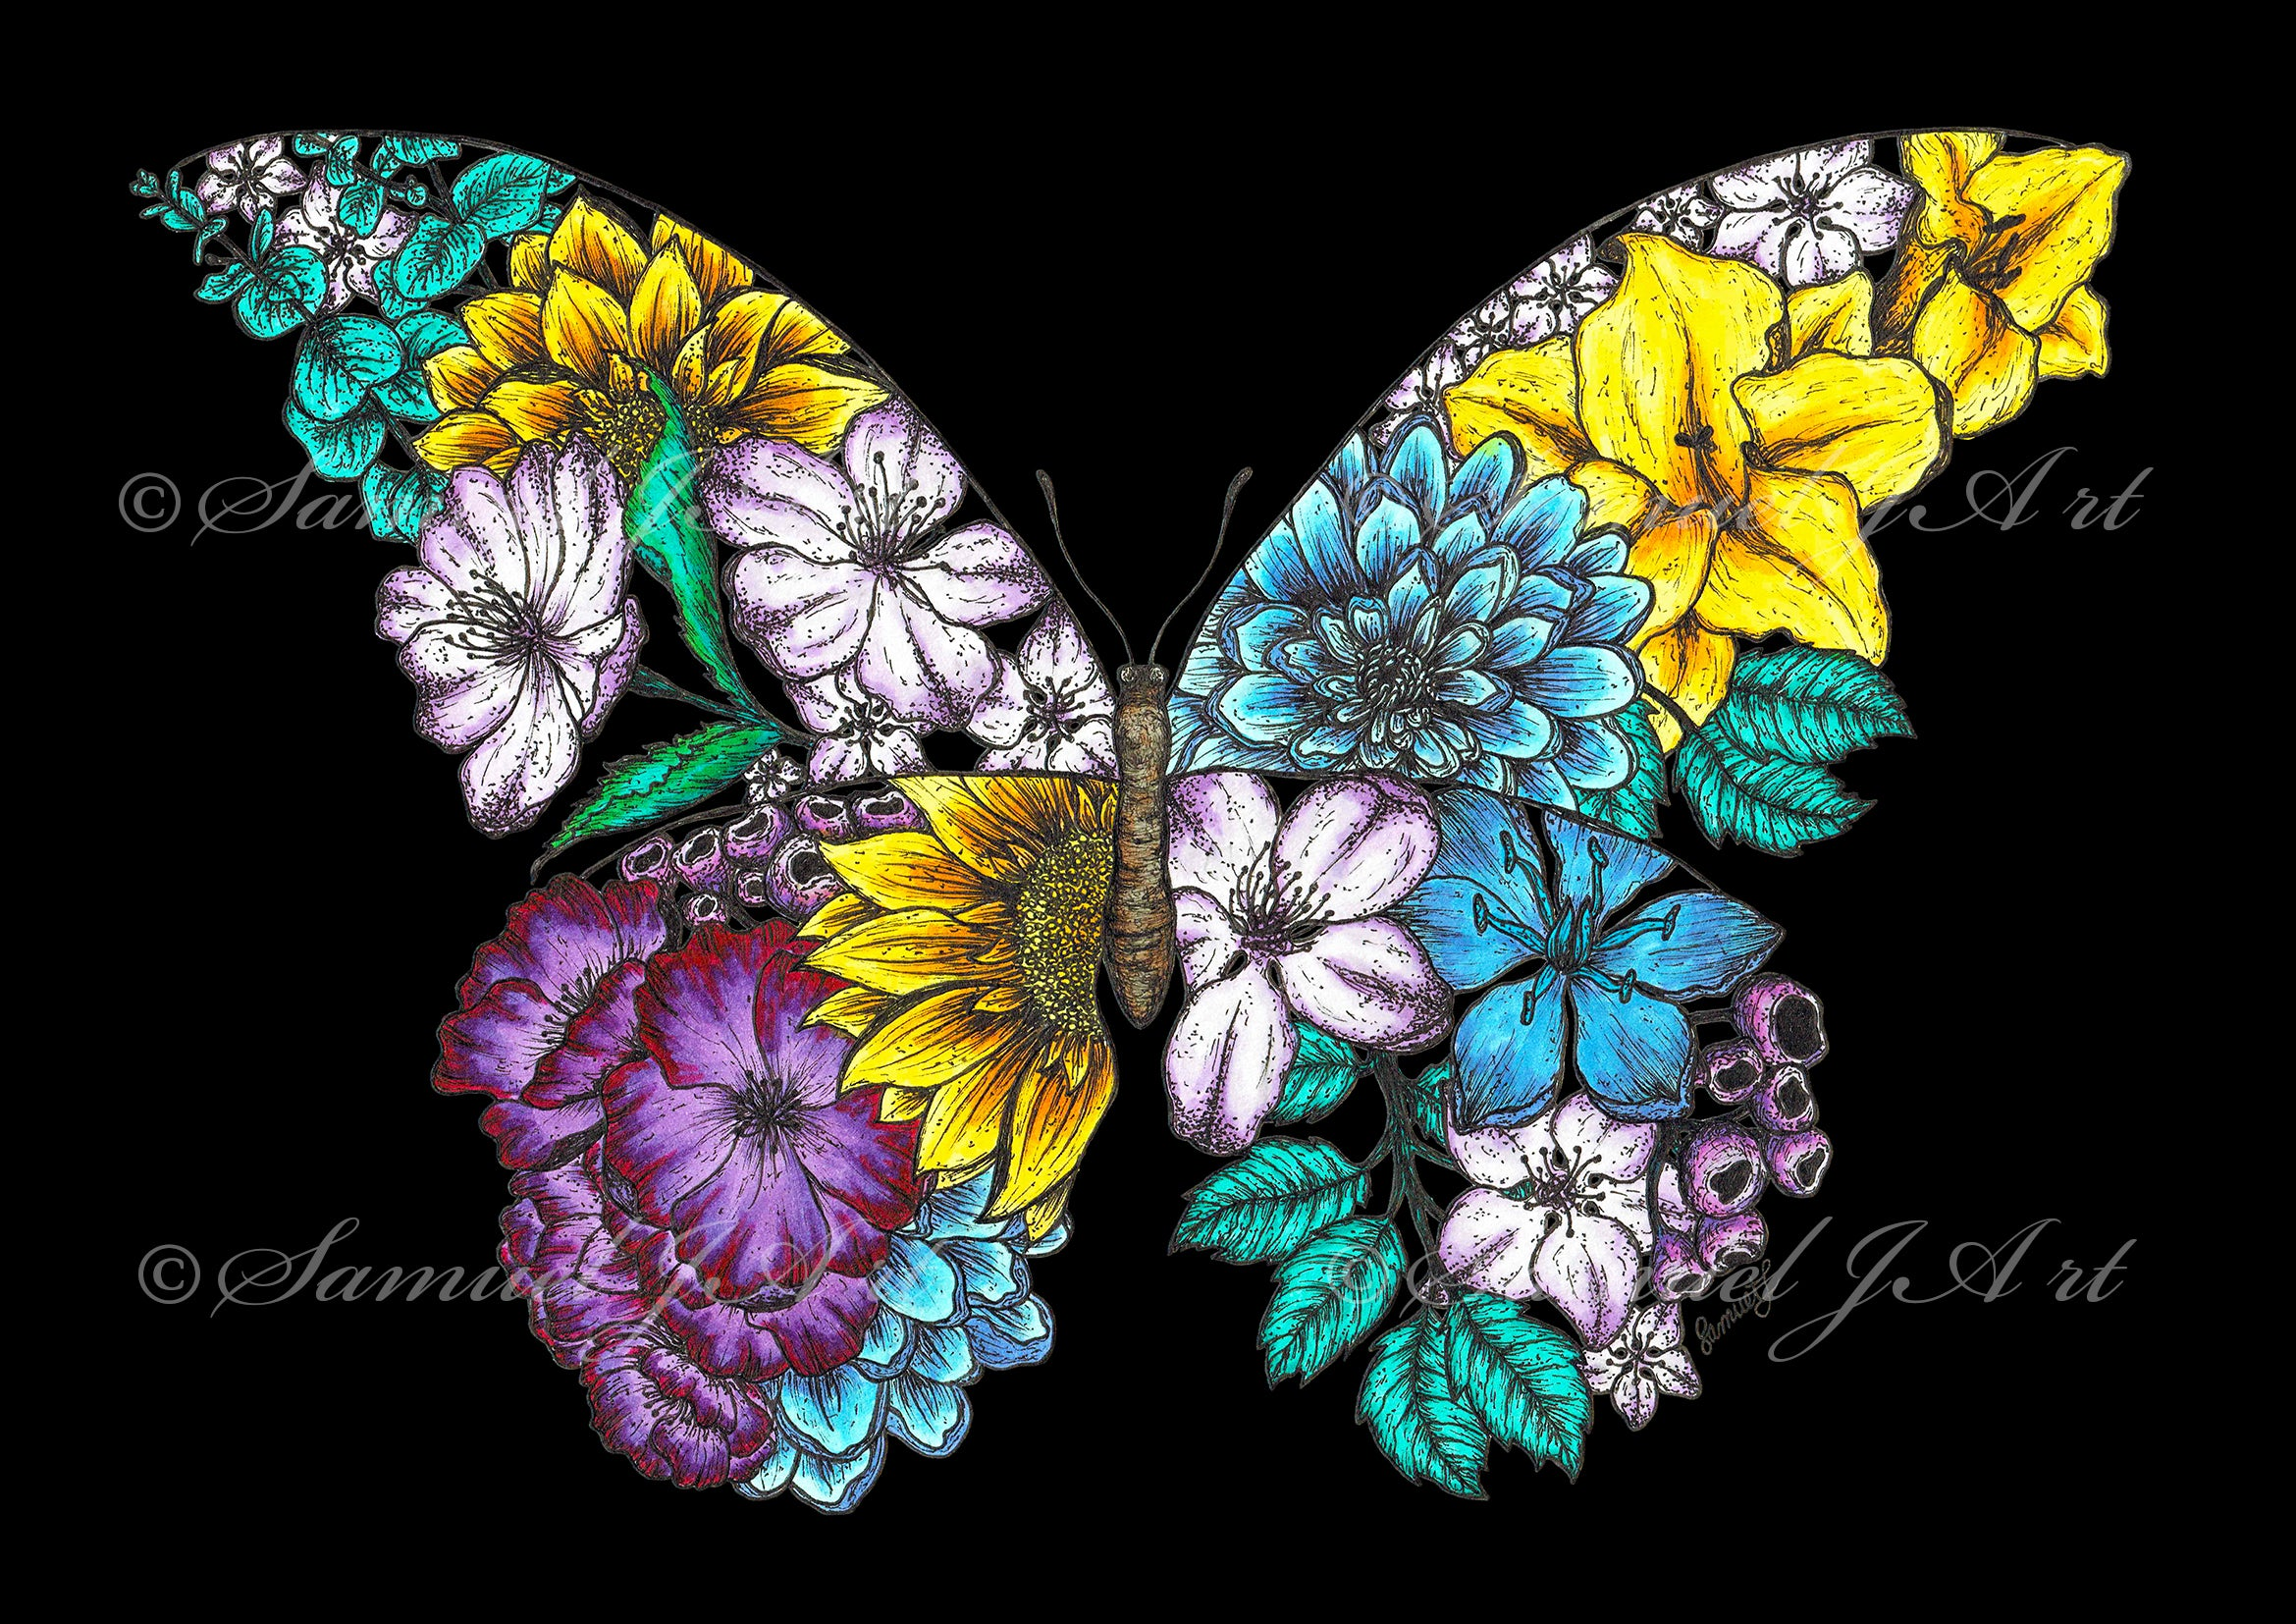 Floral Butterfly - Colour - Black Background